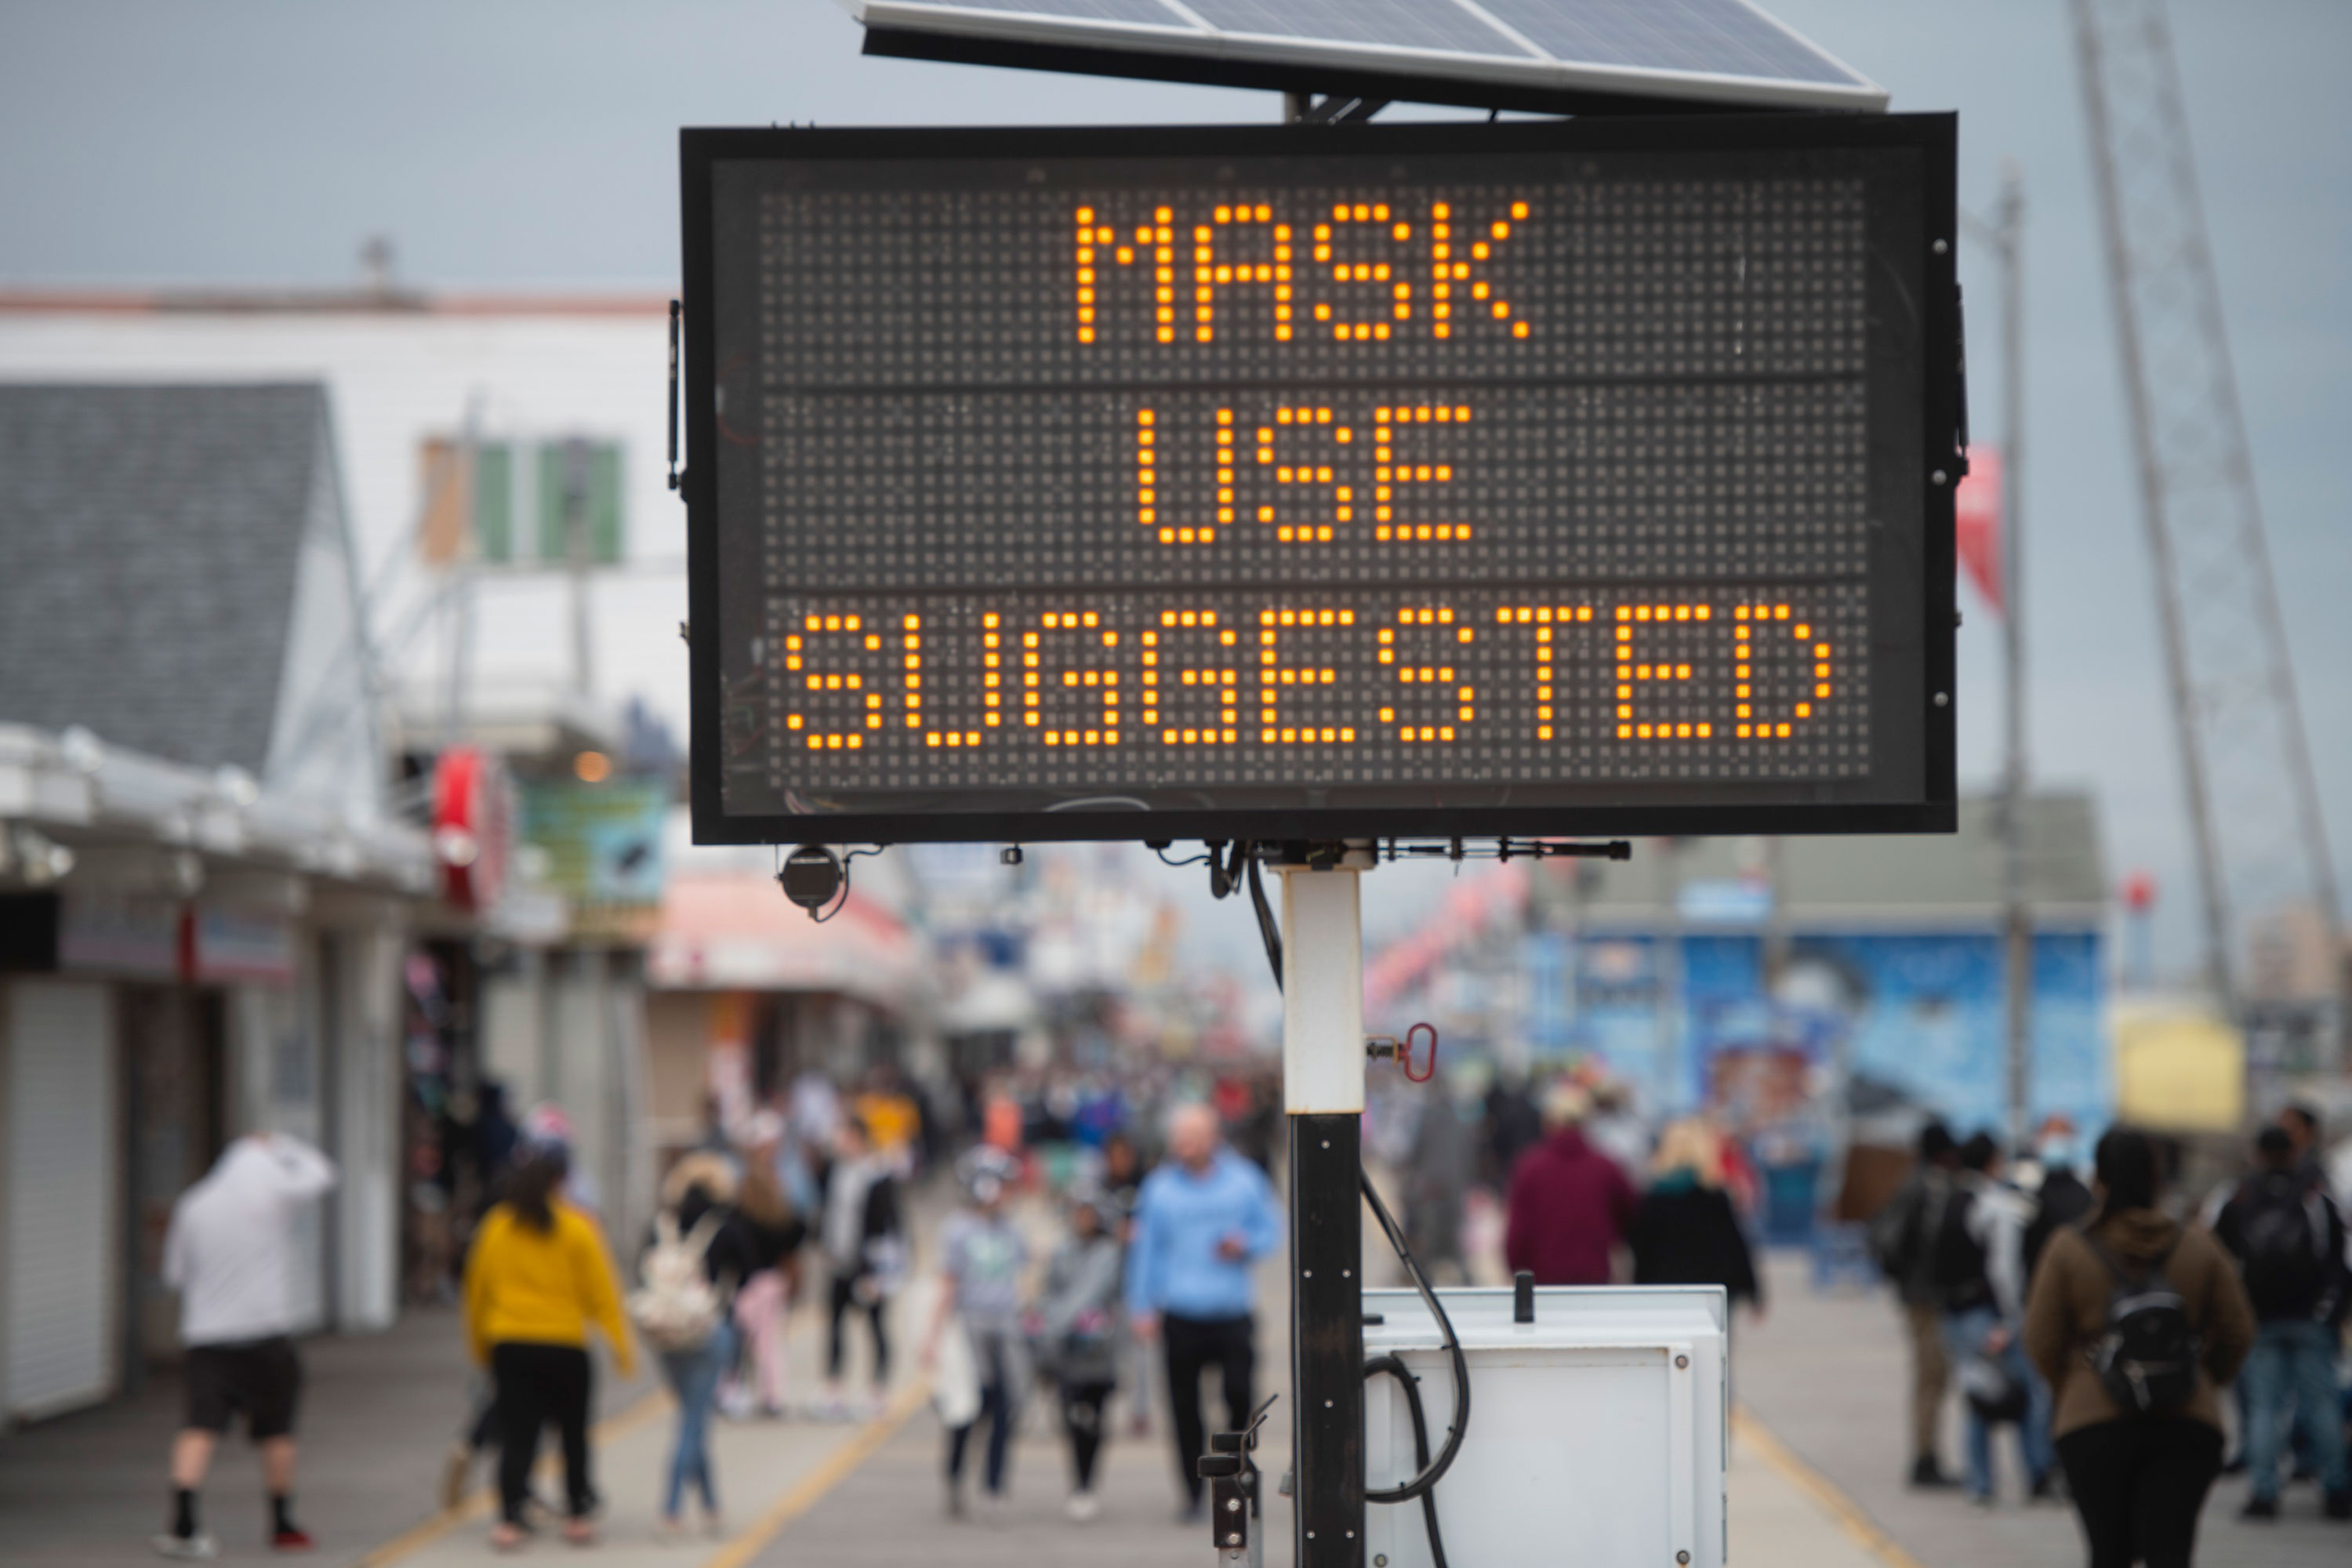 A sign on a boardwalk in Wildwood, New Jersey, on May 24, suggesting visitors wear masks.